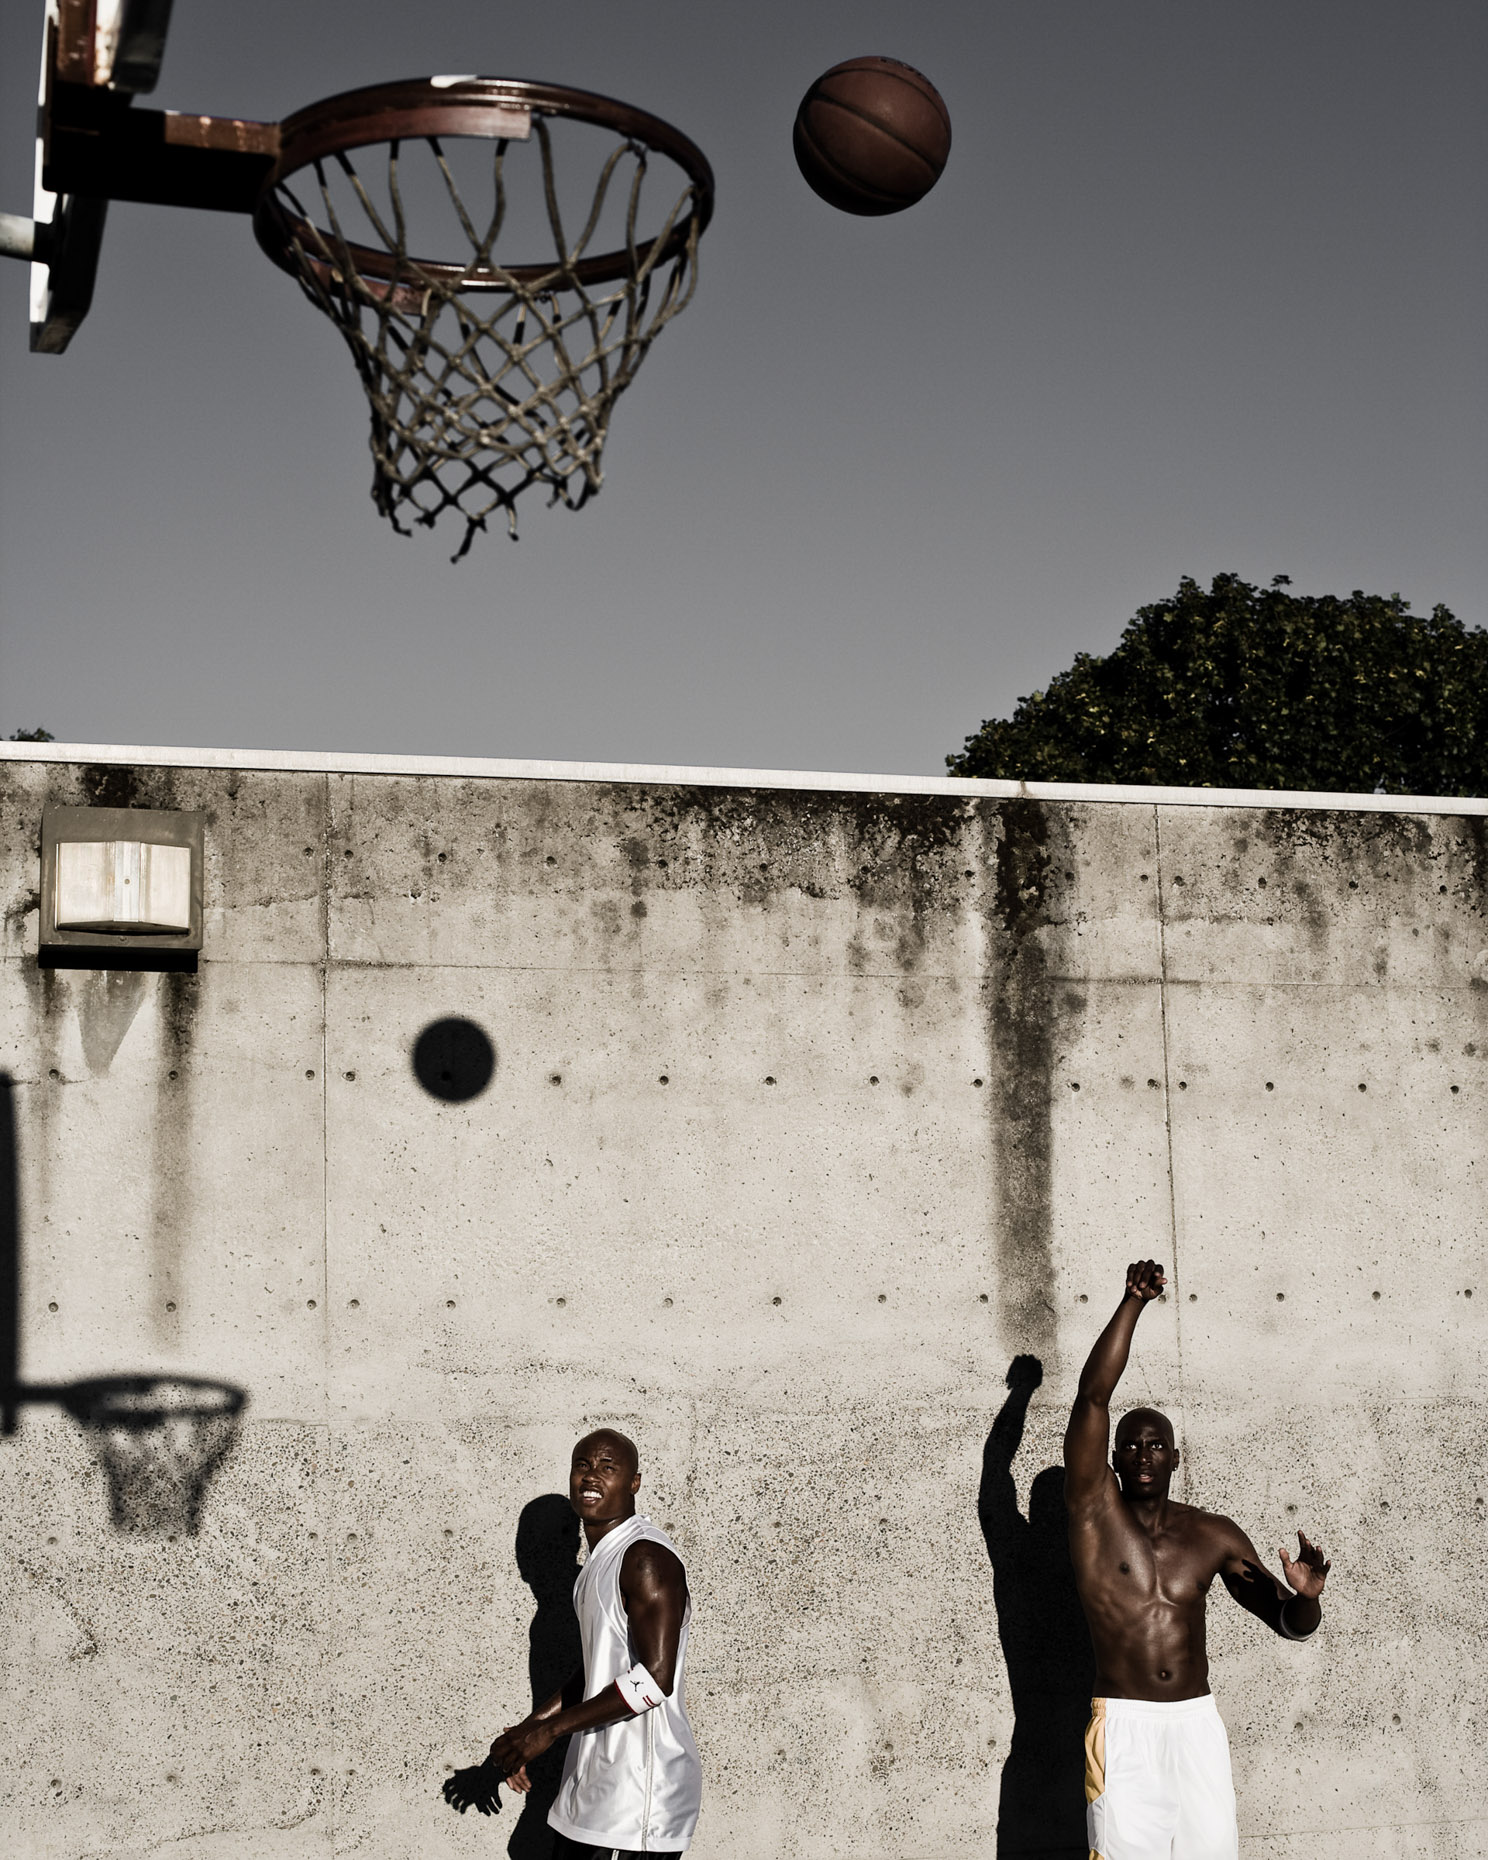 dramatic basketball photographer Andy batt shoots some hoops with Terrick Ford for Nike Jordan brand.